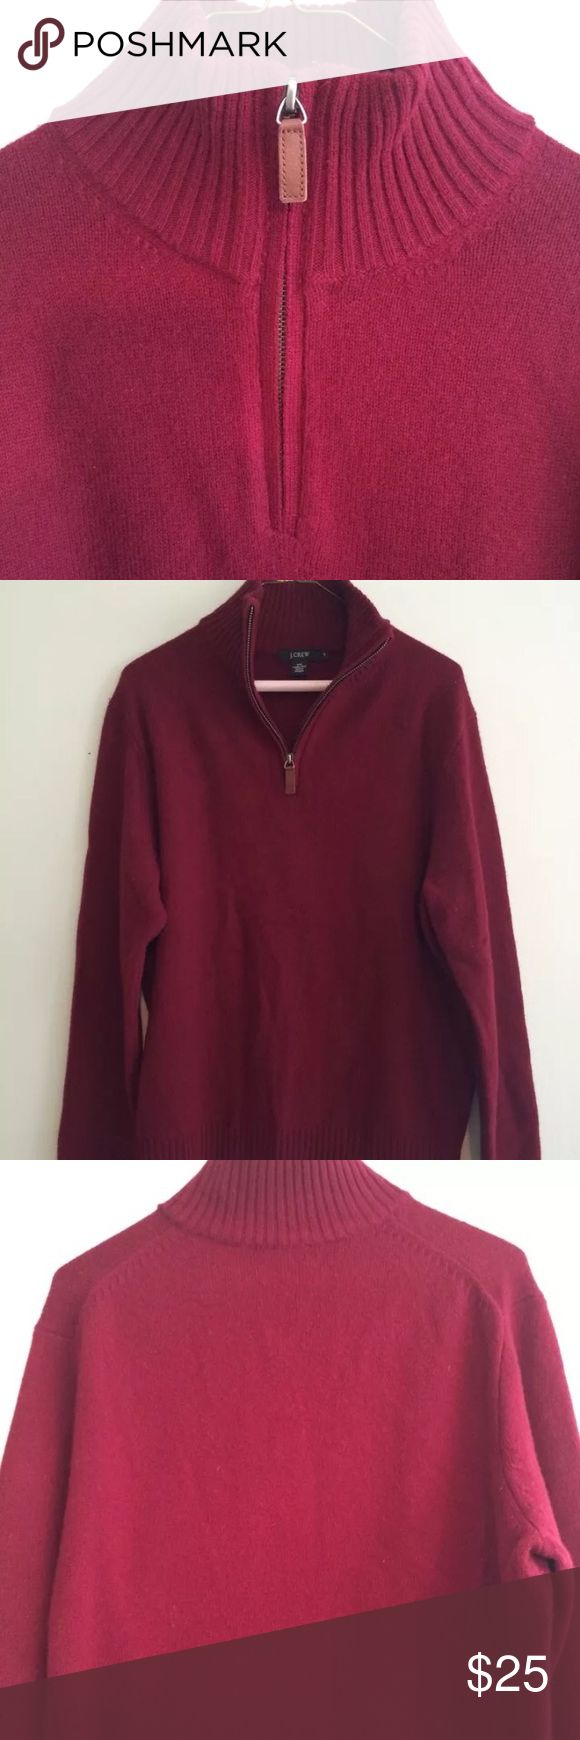 J Crew Men's Half Zip Sweater Mockneck half zip sweater with a leather pull. Deep red/burgundy color. Long sleeves with ribbing at wrists and along bottom. 100% lambs wool. All zippers work. Preloved and in good condition. J. Crew Sweaters Zip Up